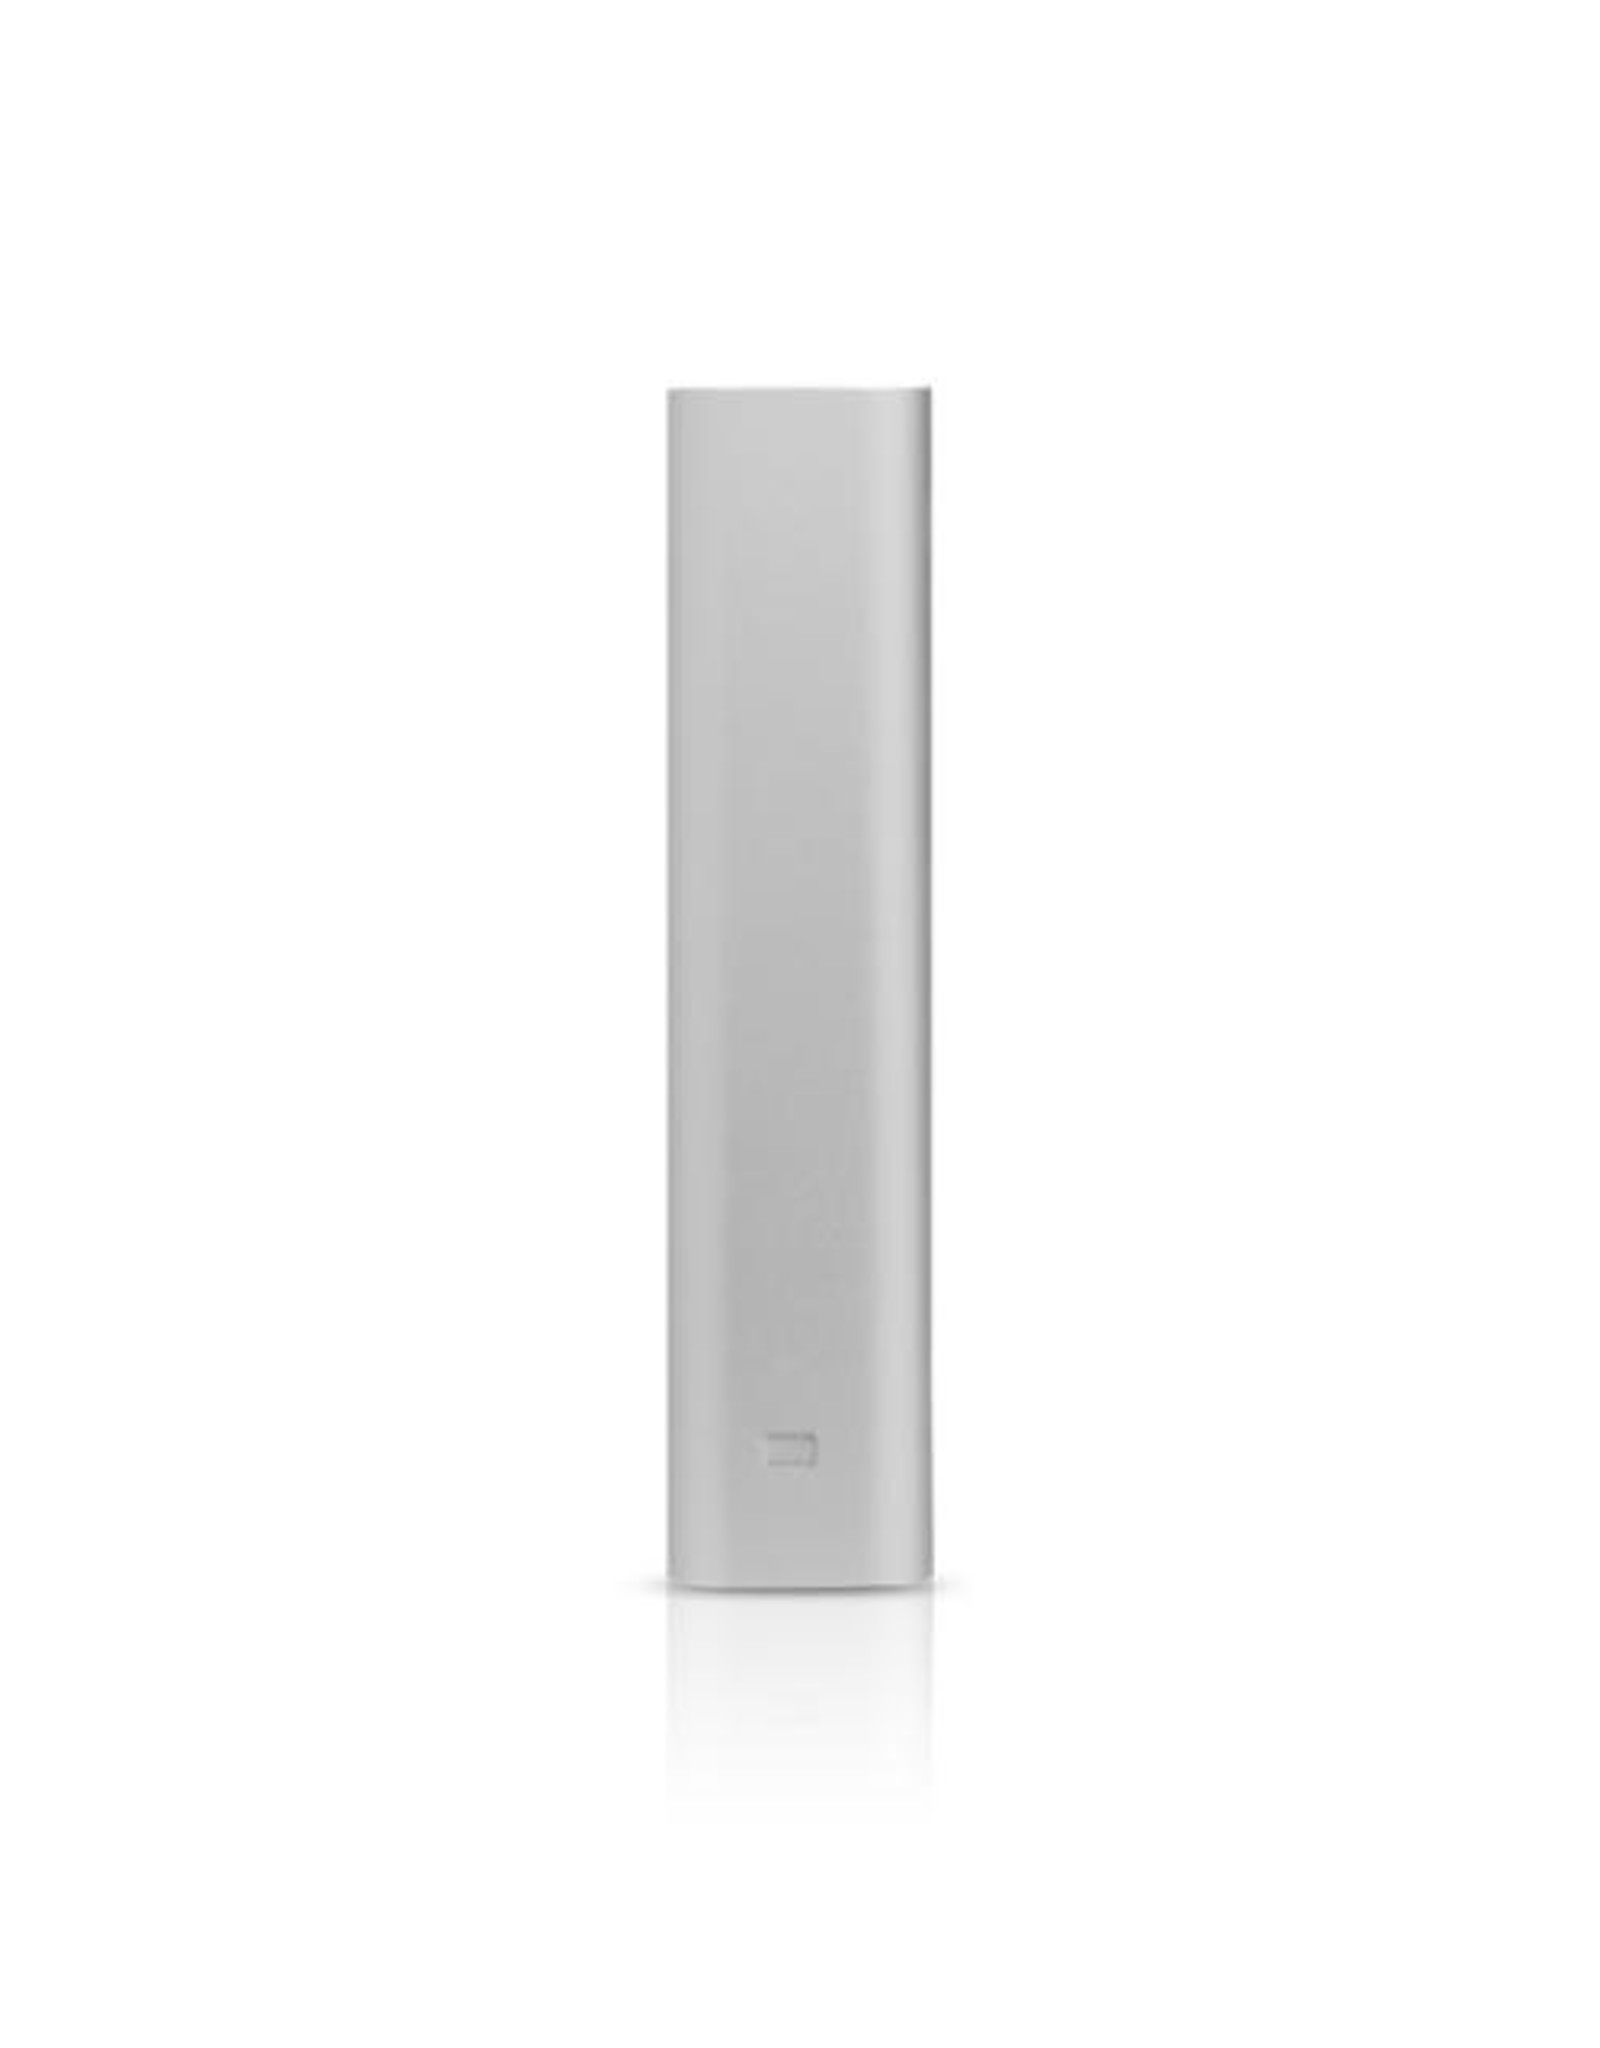 Ubiquiti UniFi Cloud Key G2